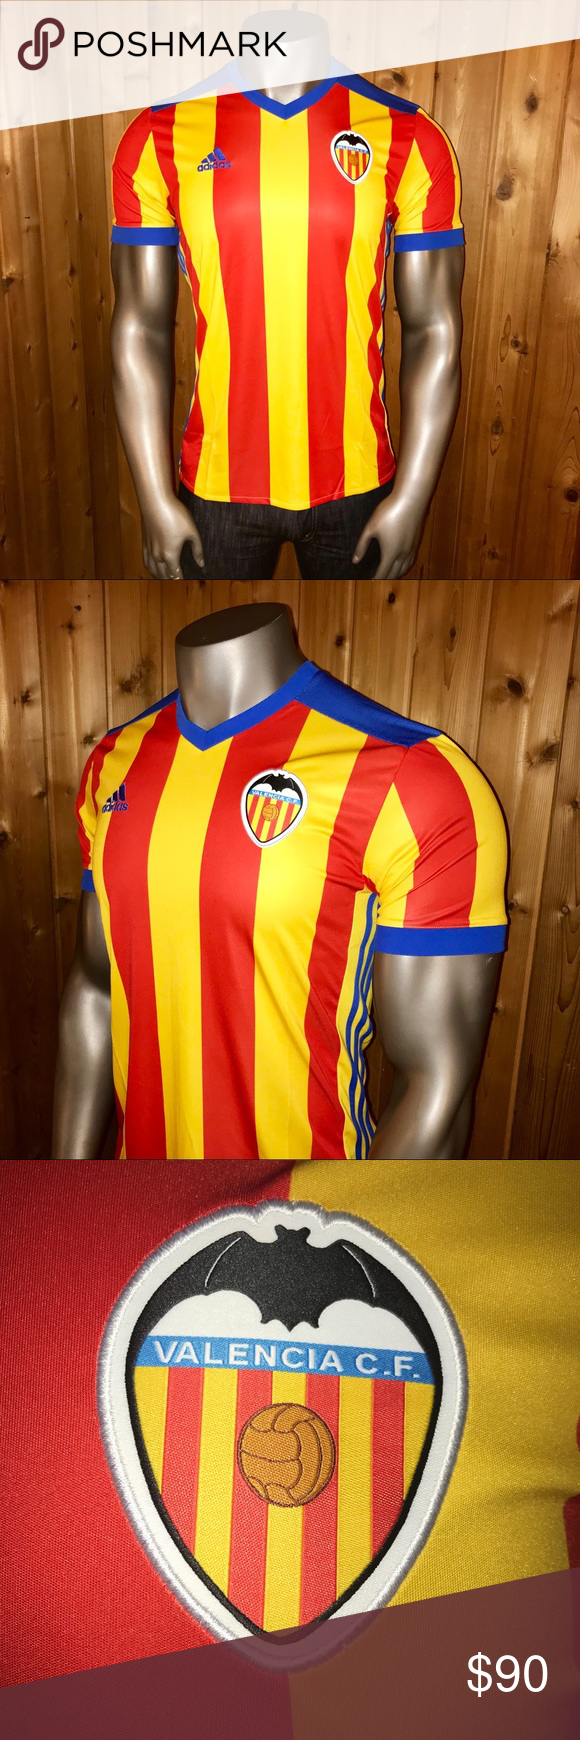 0925d6969 NWT! Adidas Valencia C.F. Men's Soccer Jersey Brand New With Tags! Size:  U.S.